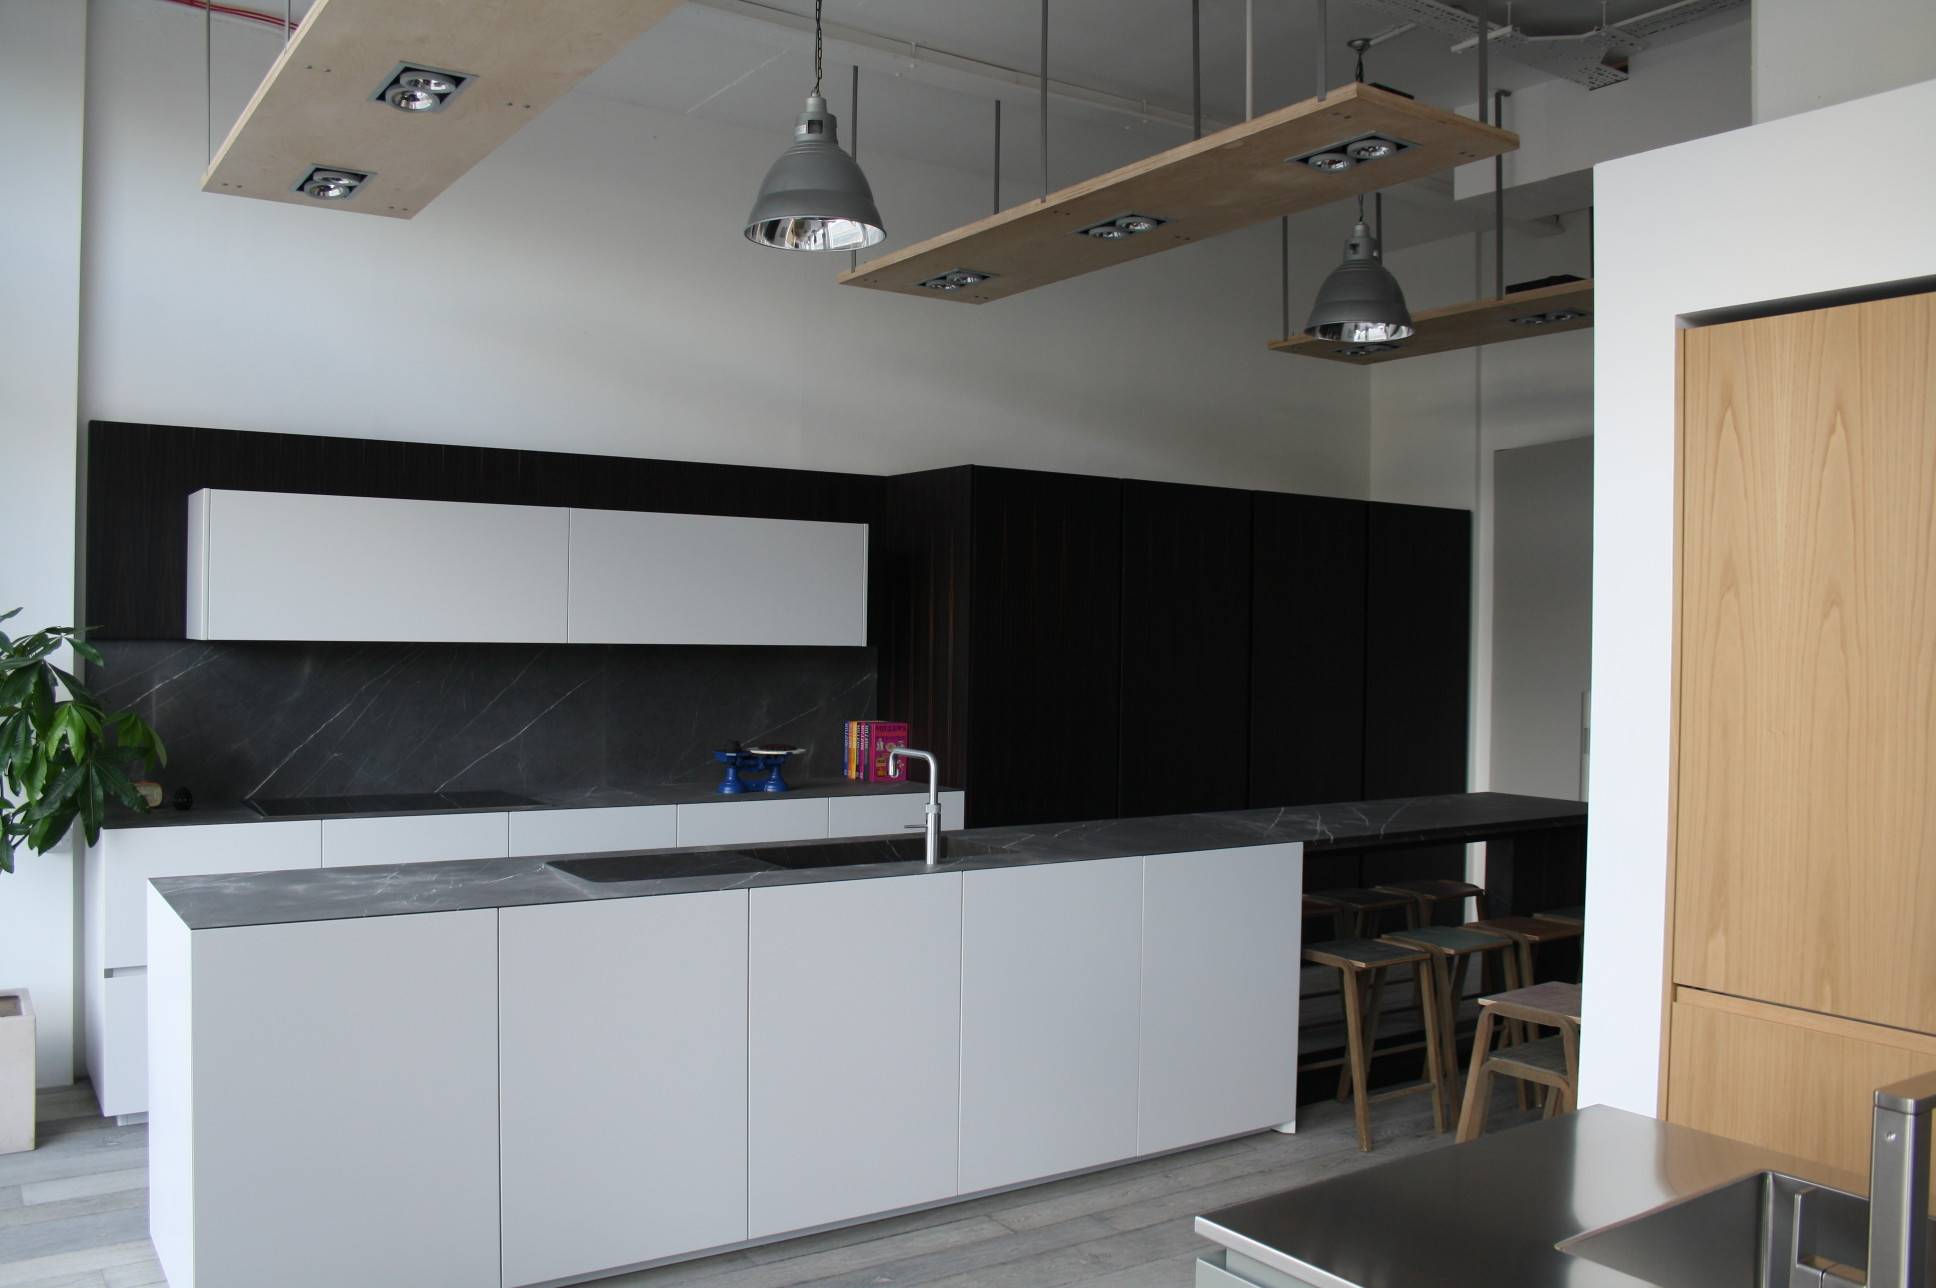 Bespoke Advice Hub Kitchens London Showroom Kitchen Sourcebook